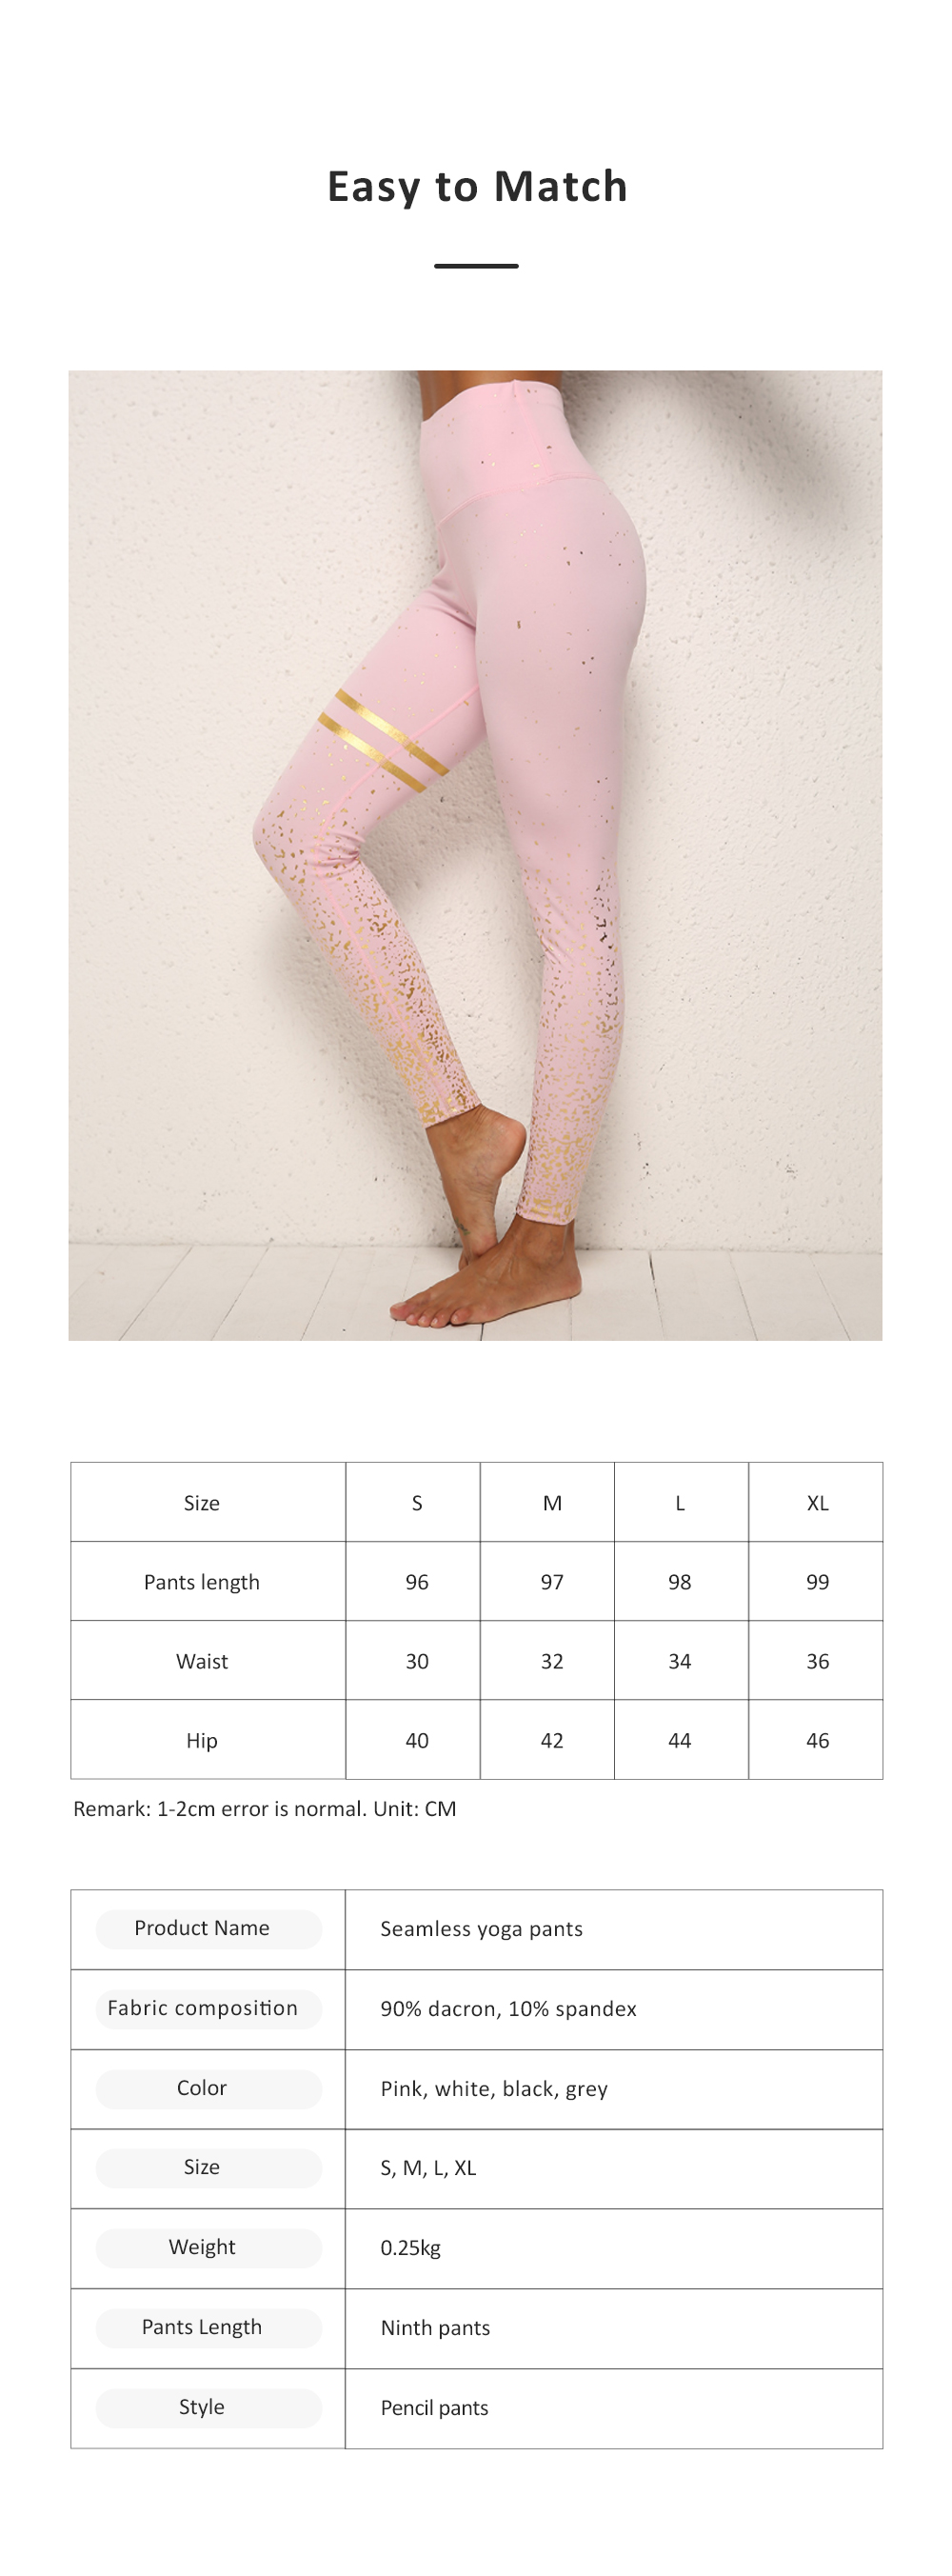 Yoga Fitness Women Leggings High-waisted Elastic Pants Close-fitting Seamless Ninth Pants with Silver Plating for Lady Fitness 6